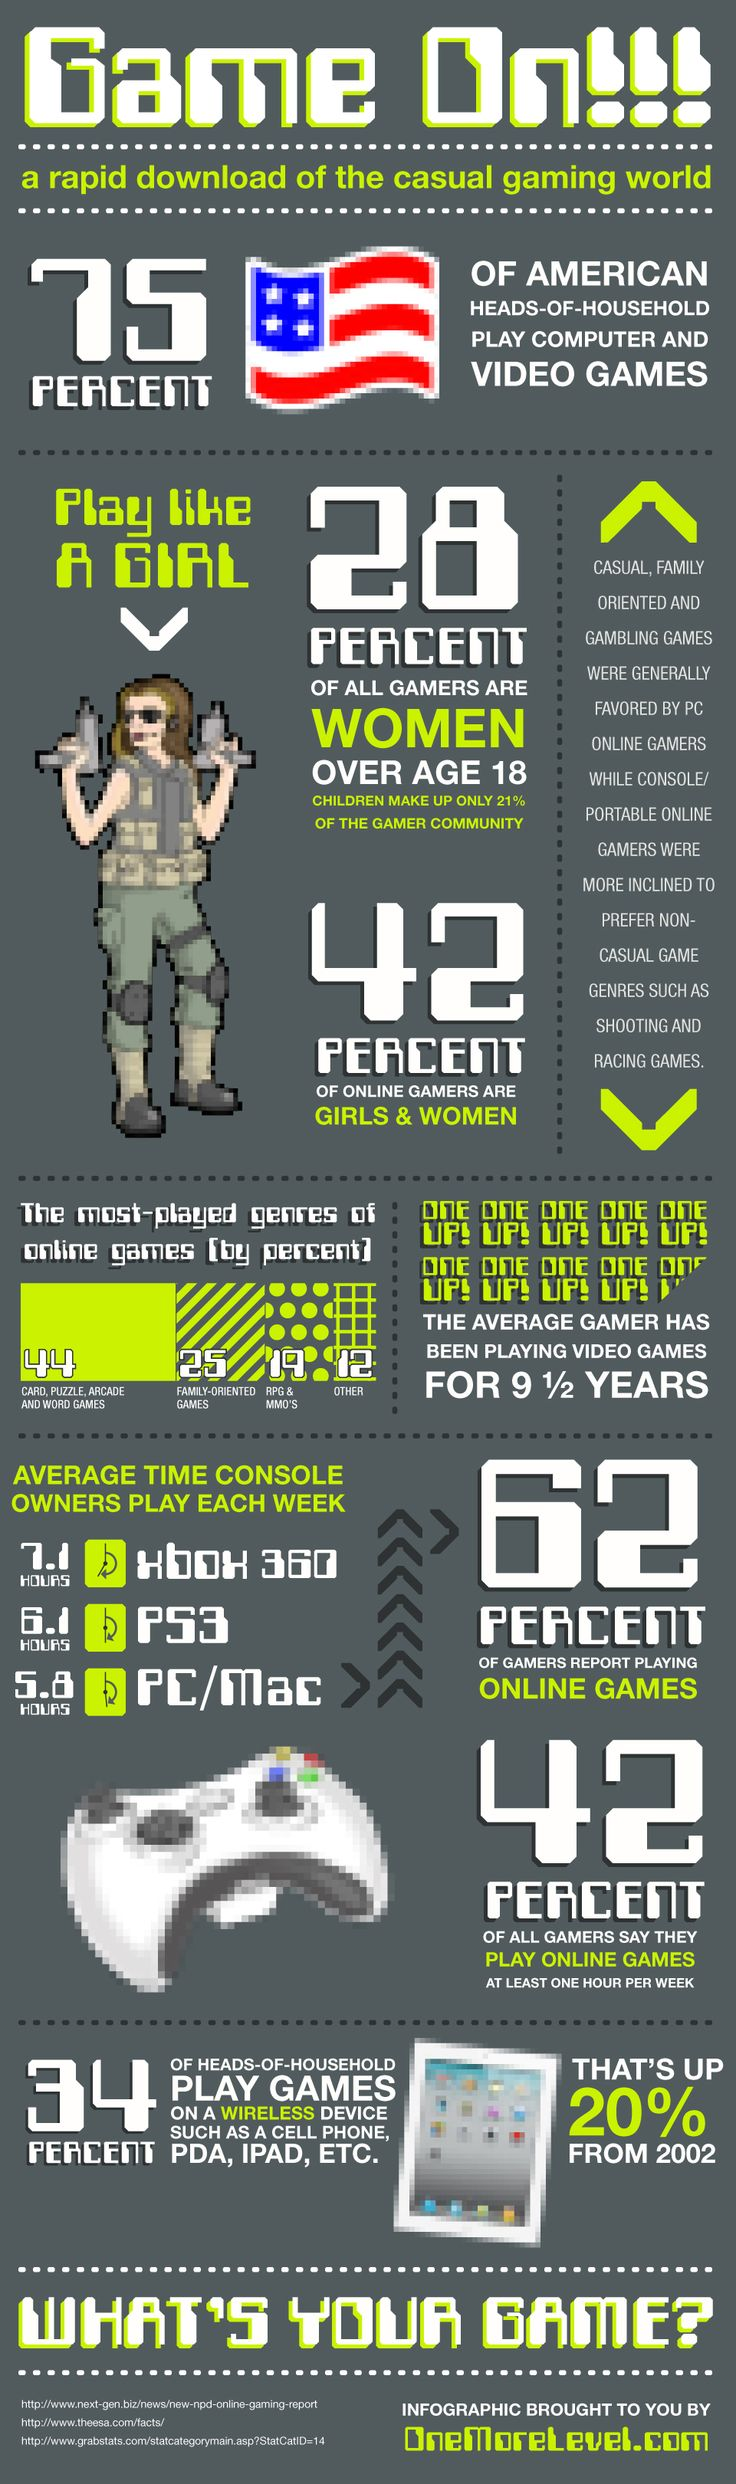 The History of Casual Gaming (Infographic): 75% of American heads-of-household play computer games and other console games, and 28% of all gamers happen to be women above the age of 18 – and children only make up 21% of the gamer community.  #CasualGaming #Infographic. pay with #paysafecard